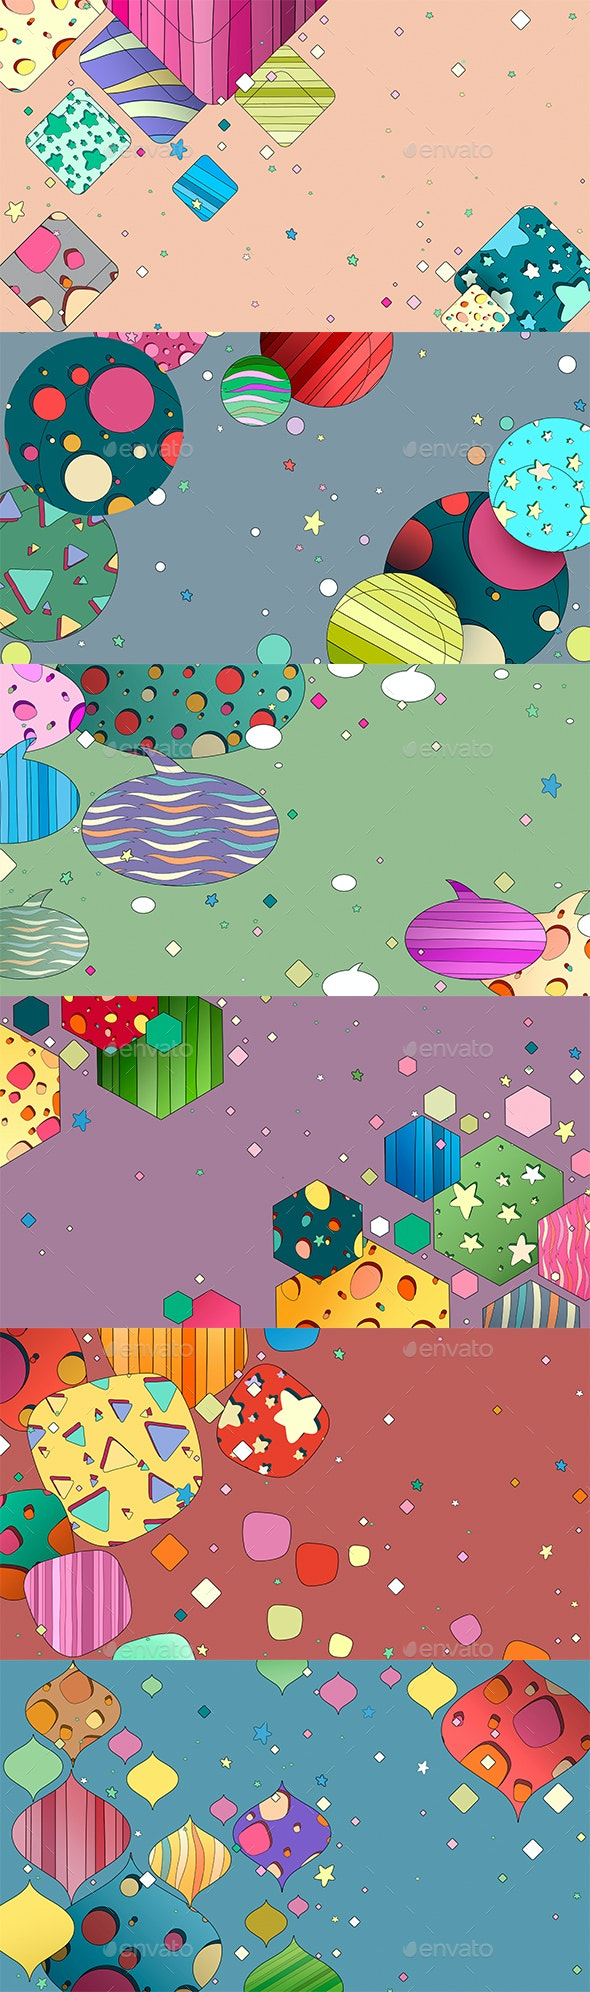 Fun Background - Backgrounds Graphics